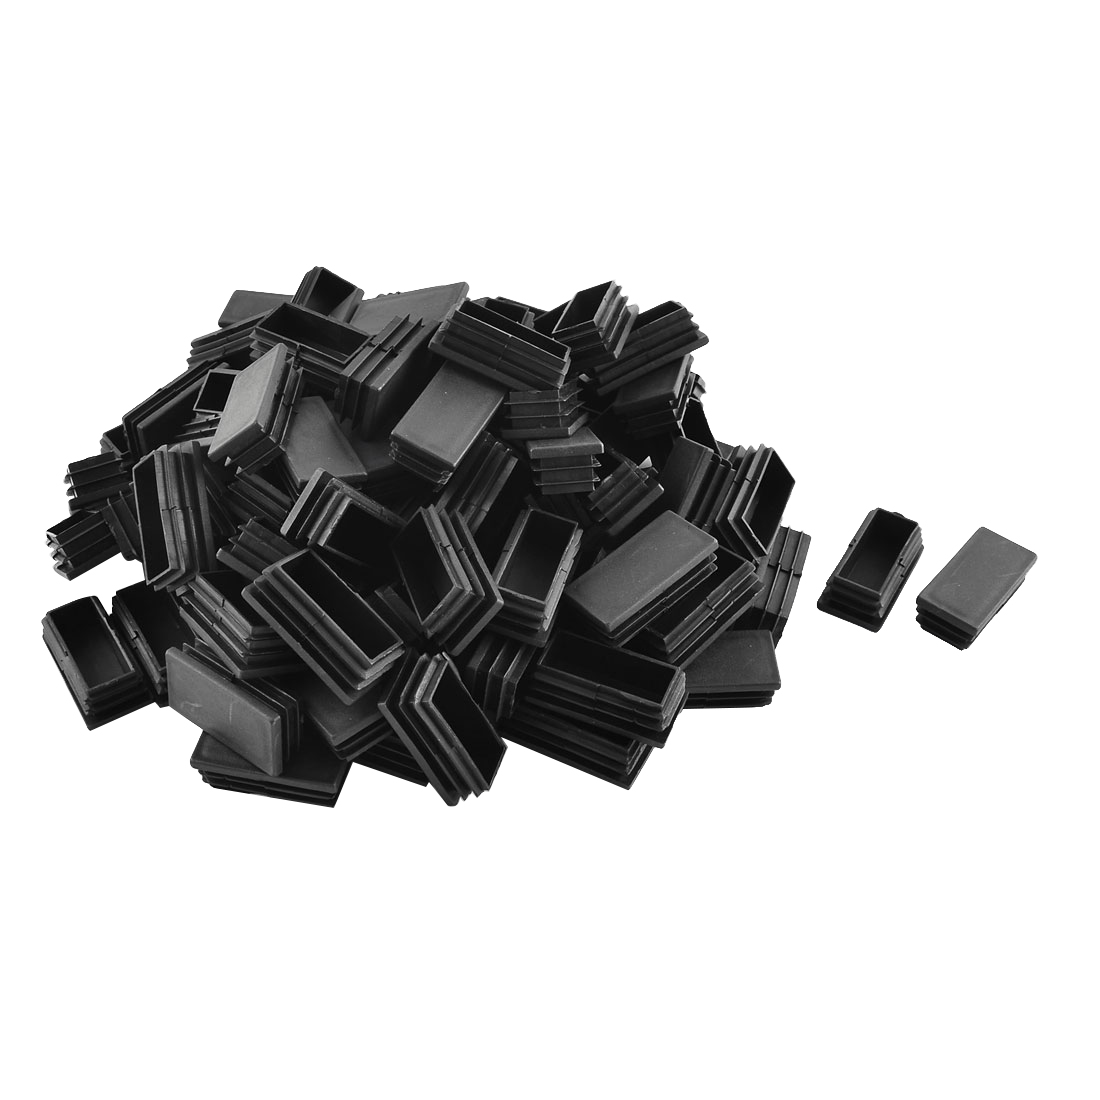 Plastic Rectangle Blanking End Cap Tubing Tube Inserts Black 25mm x 50mm 100 Pcs